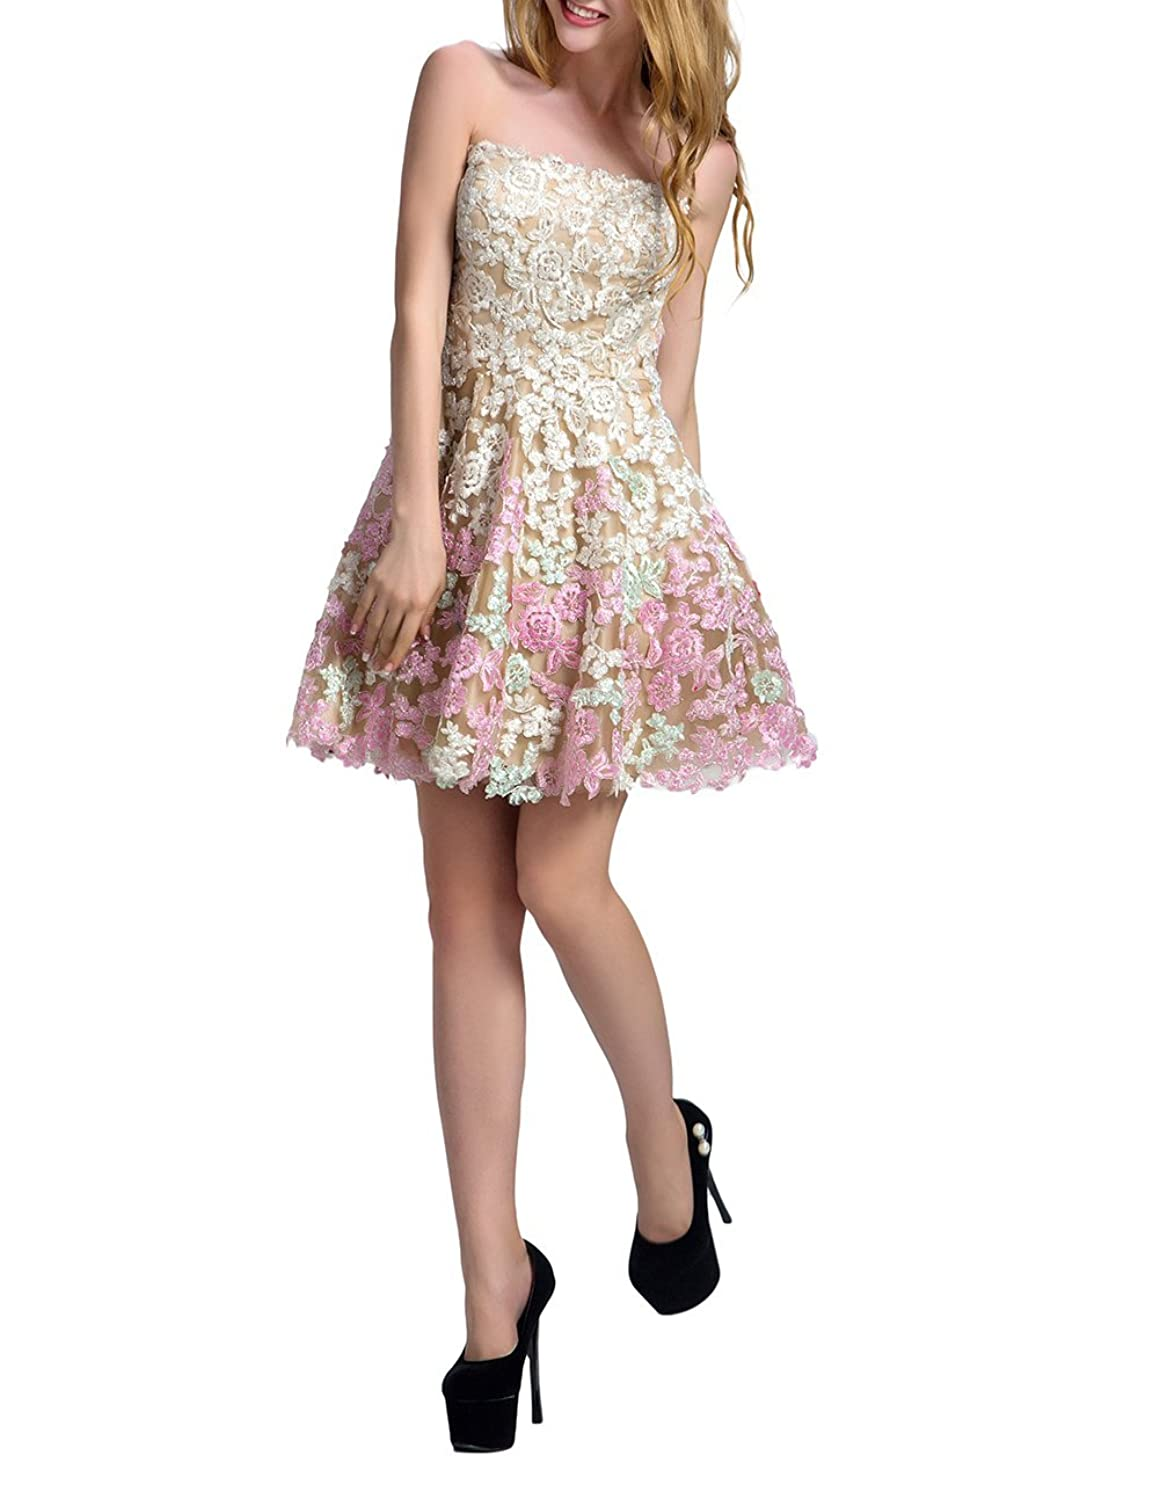 Qunvian Lace Appliques Strapless Homecoming Dresses Short Prom Gowns